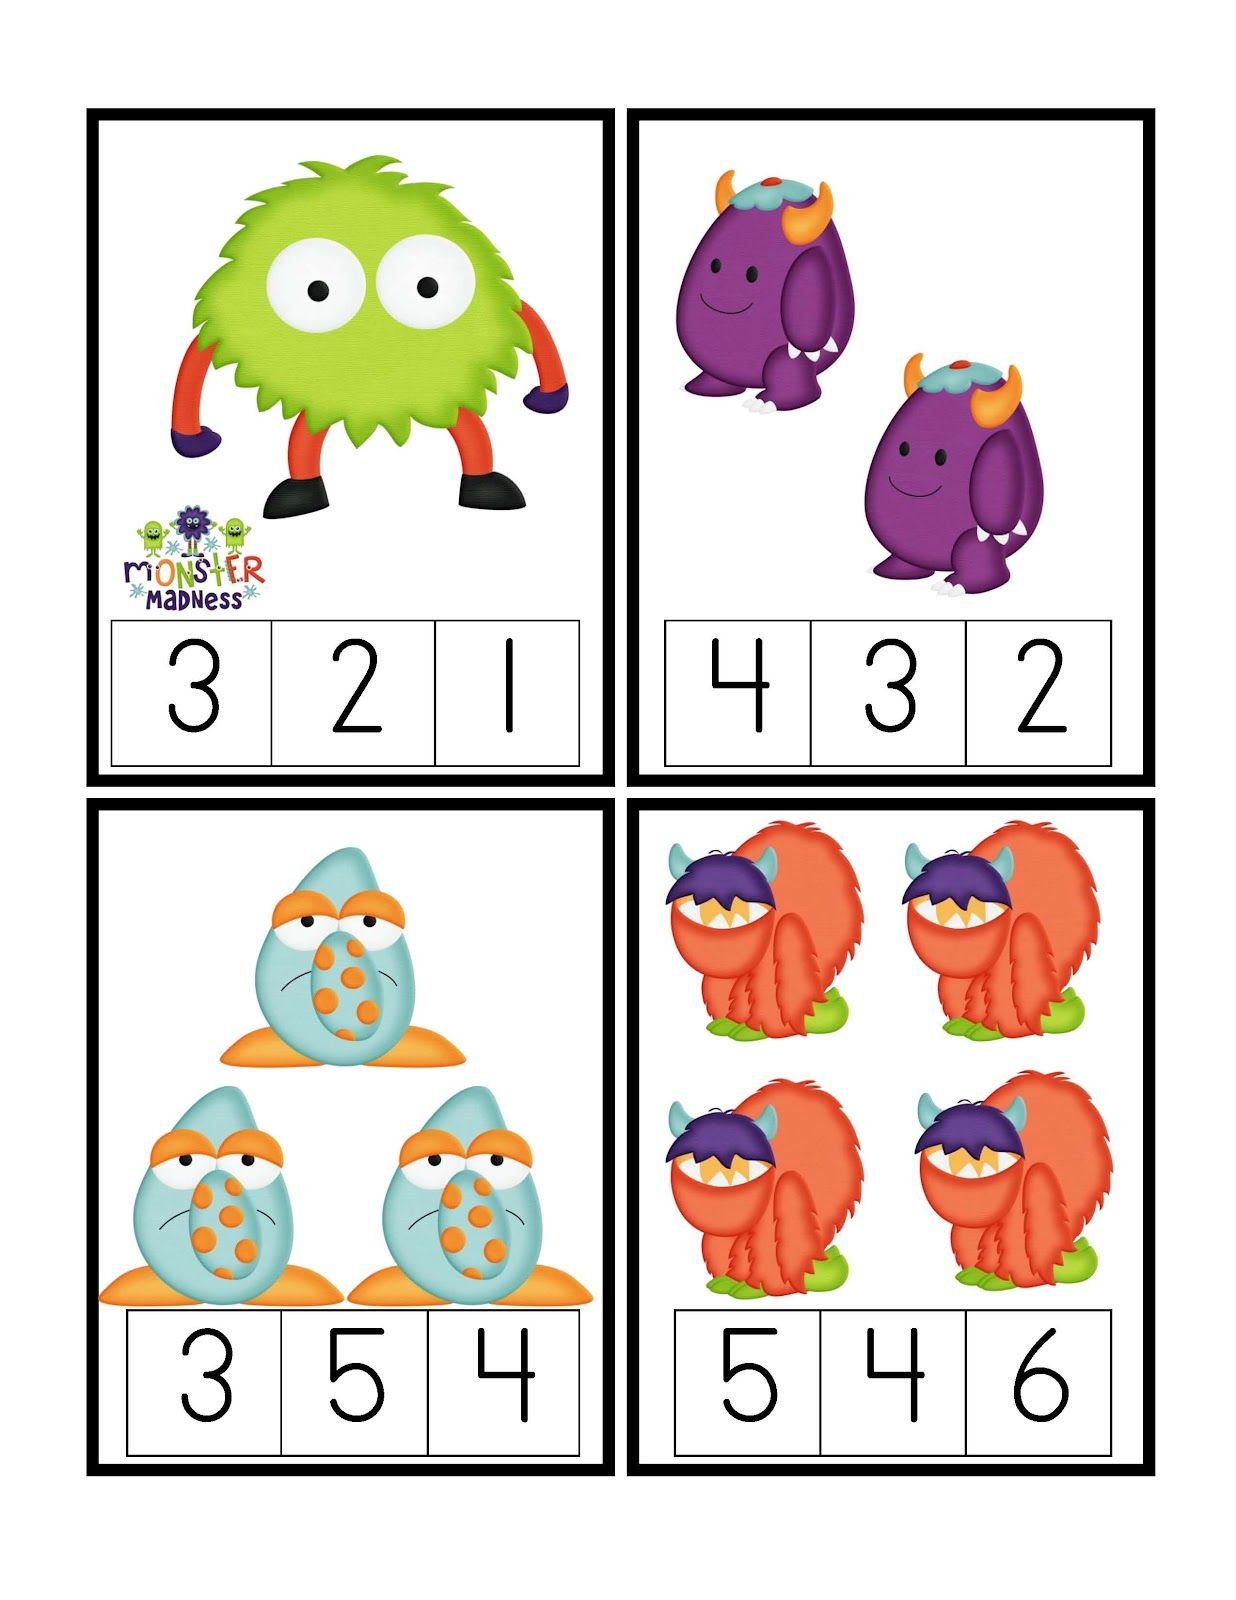 Preschool printables little monsterus printable math counting